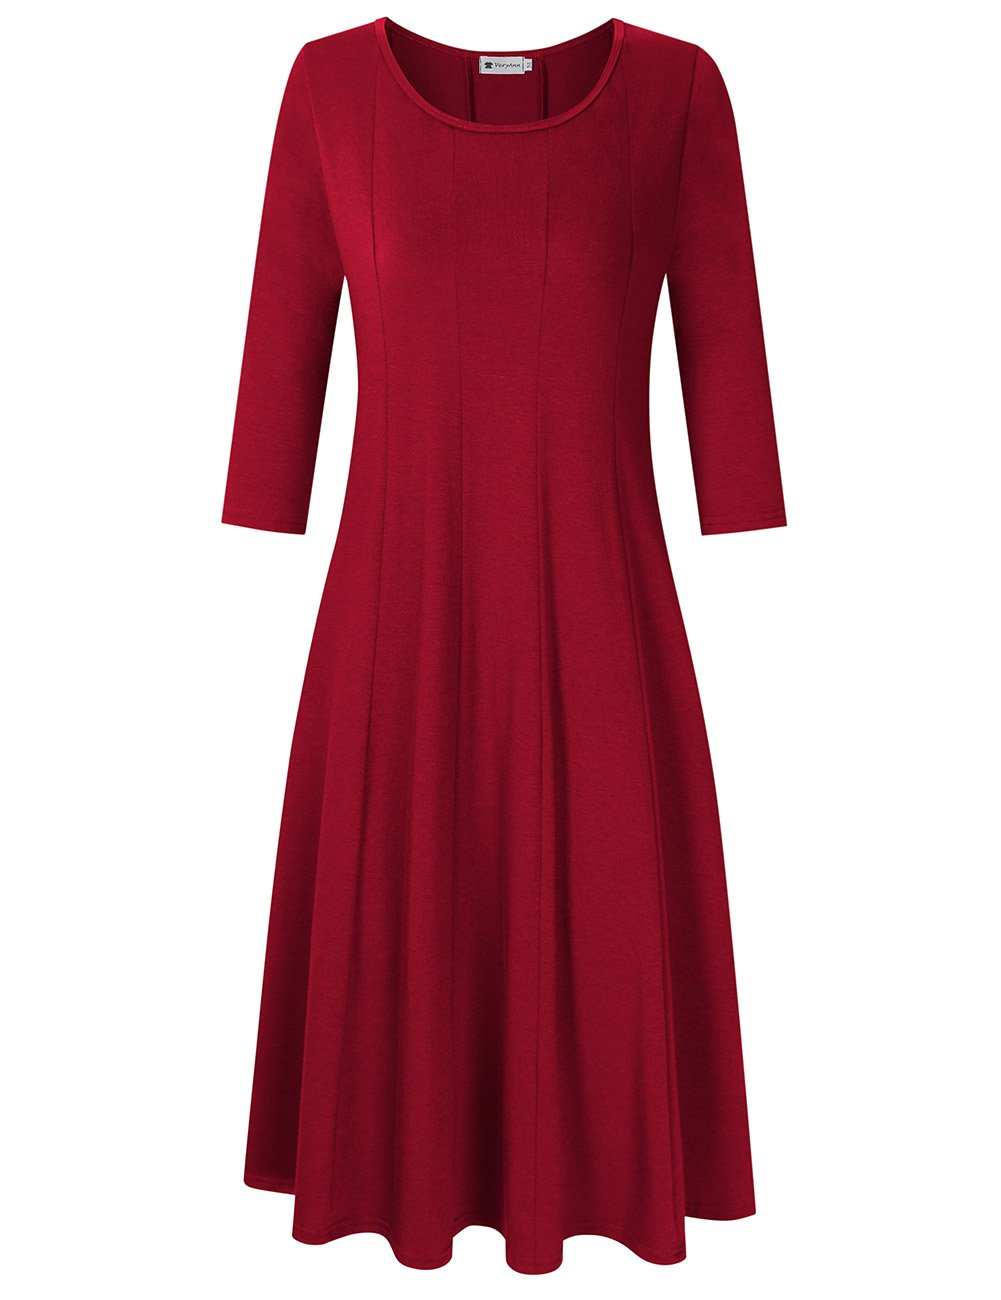 Women's 3/4 Sleeve A-Line Casual Flare Midi Long Dress Wine Red XL by VeryAnn